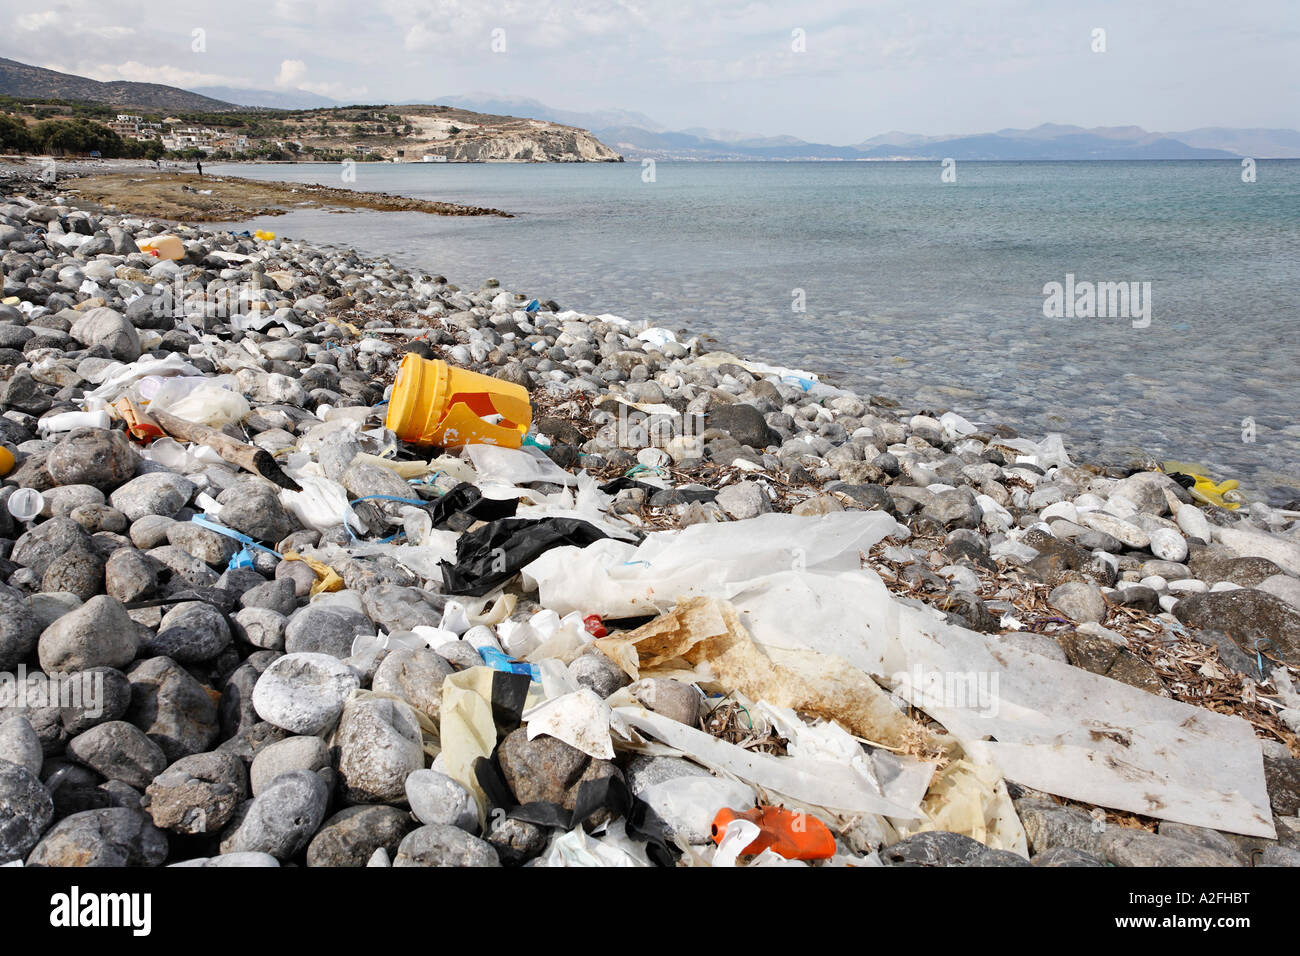 Polluted beach in Pachia Ammos, Gulf of Mirabello (Mirambello), Eastern Crete, Greece - Stock Image